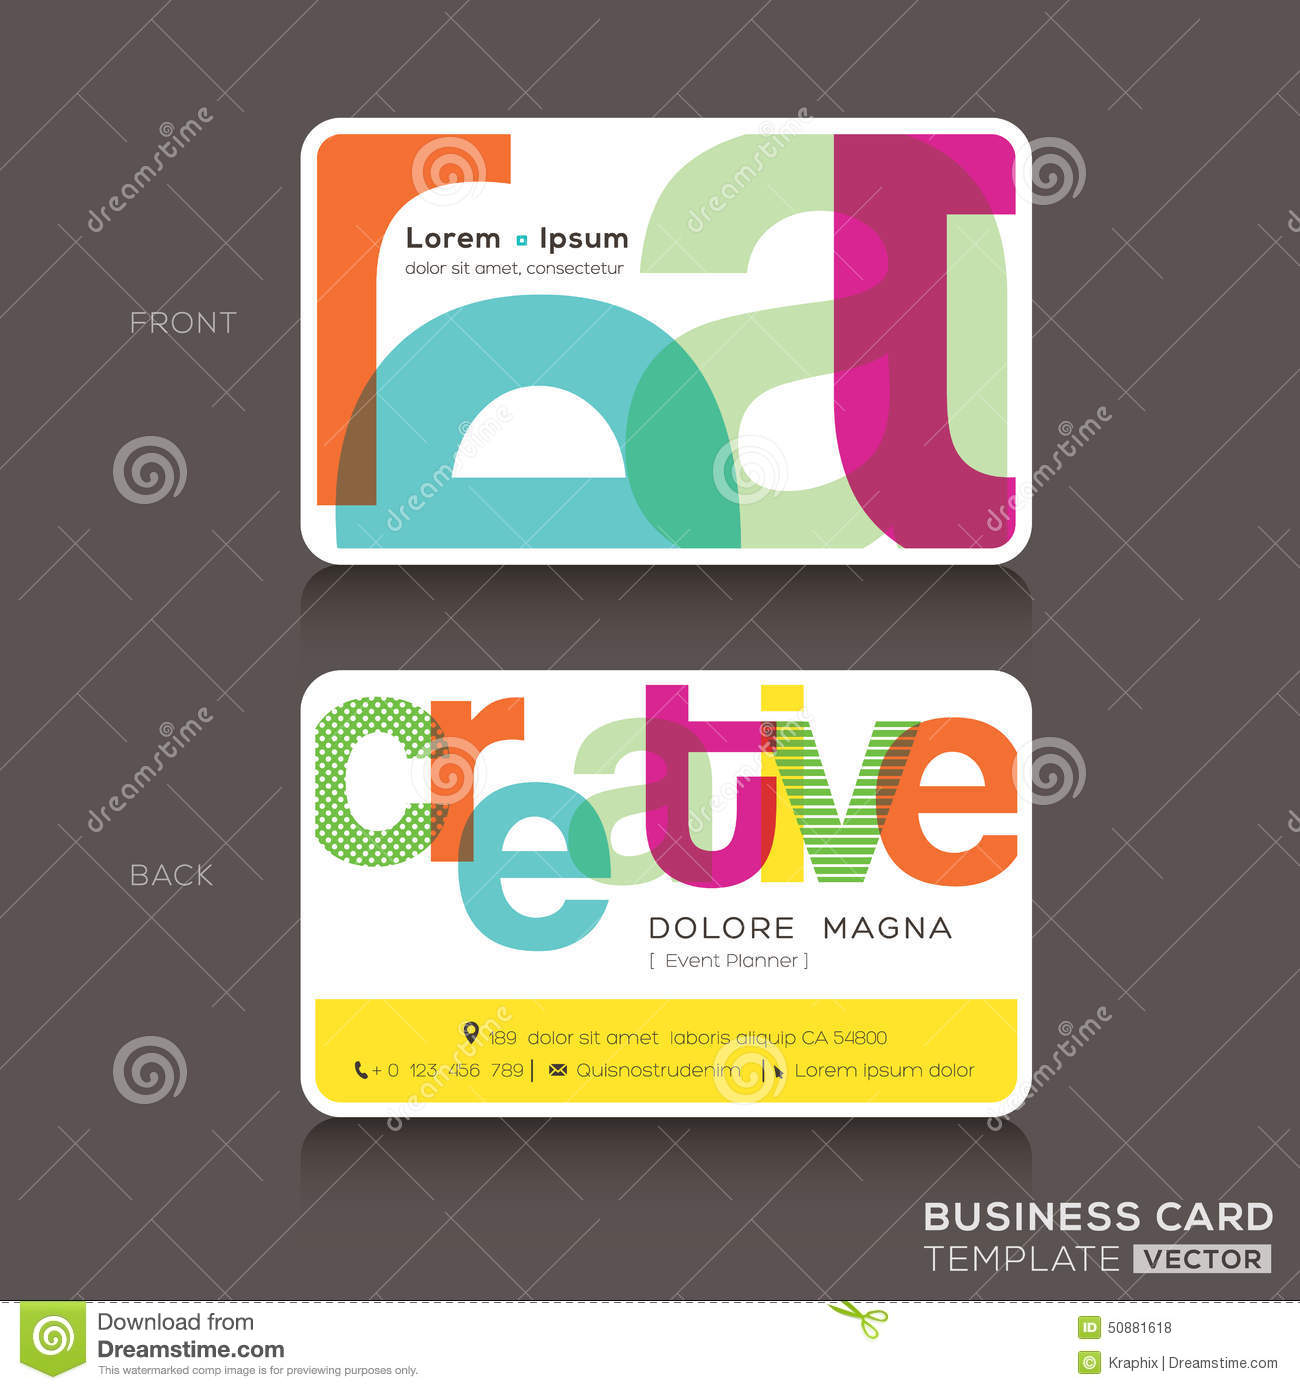 Business card designs templates akbaeenw business card designs templates accmission Images